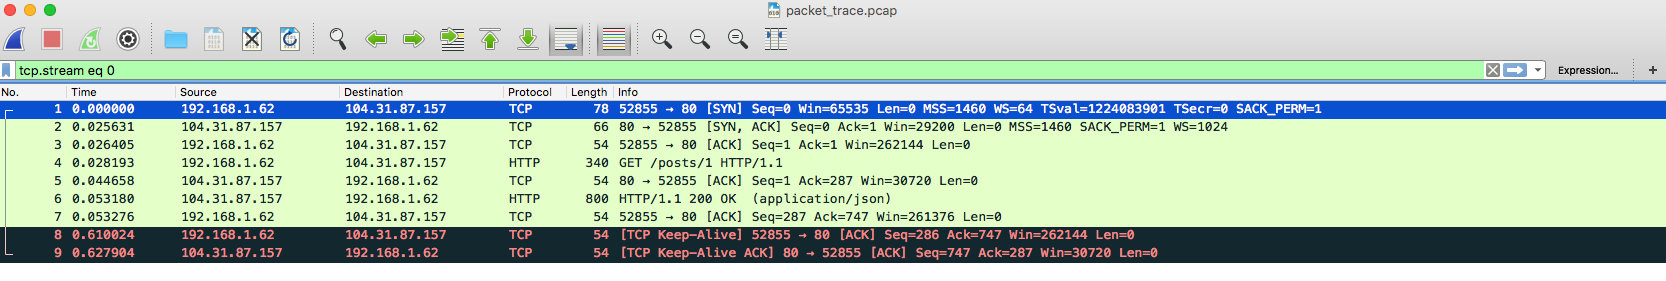 Capturing a Packet Trace from an iOS Device | Agnostic